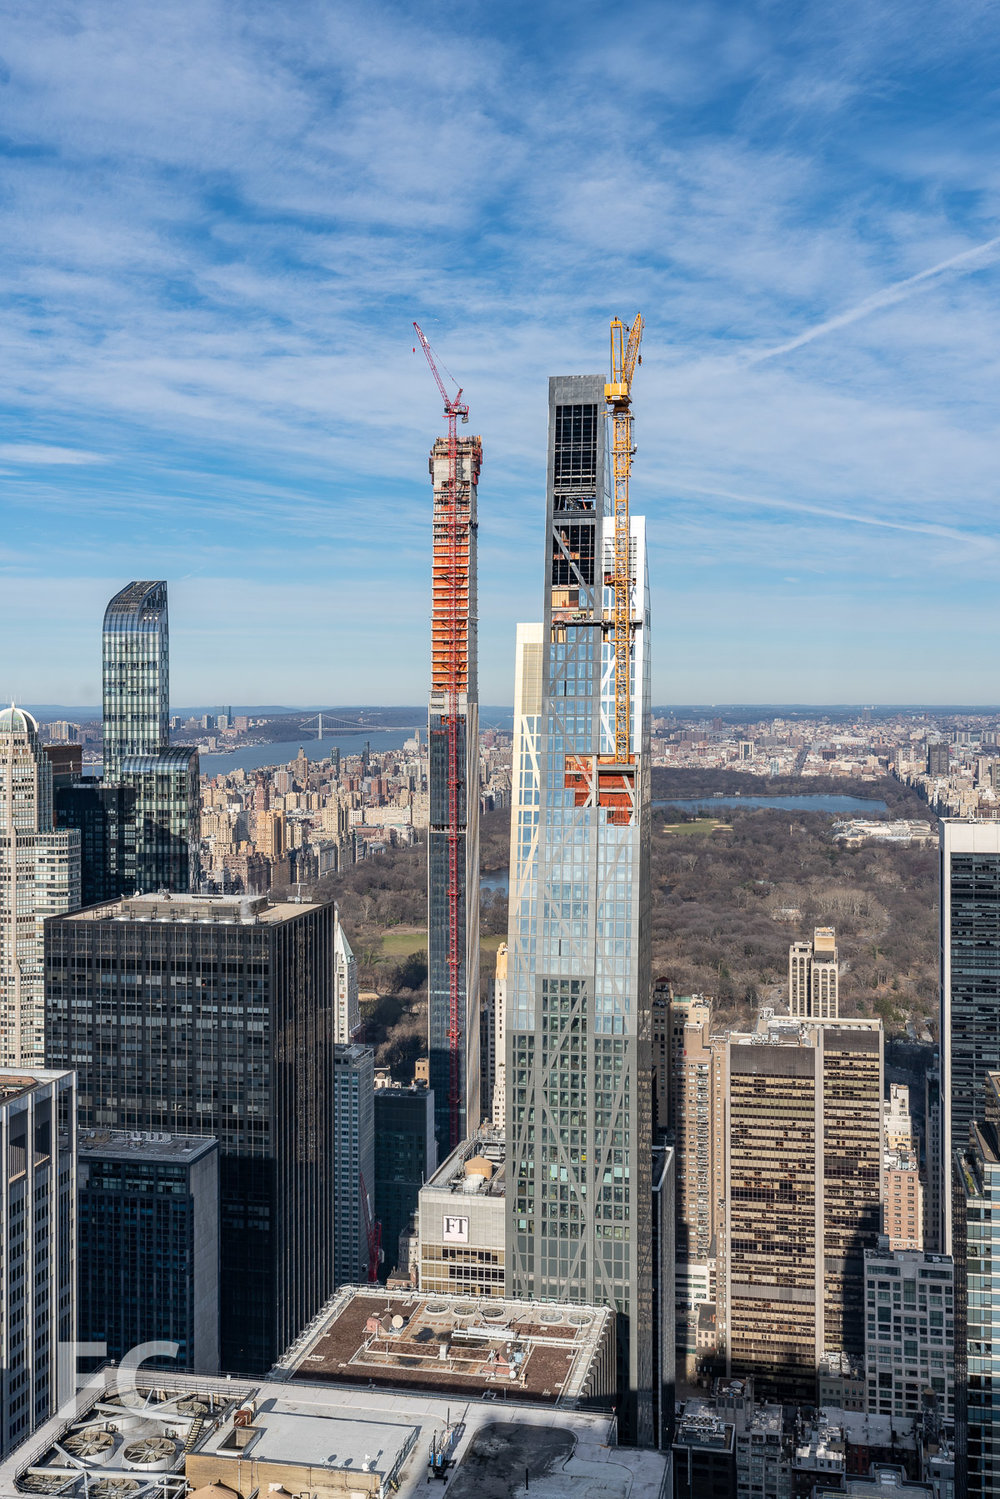 South facade of 53 W 53 (right) and 111 W 57 (left) rising in Midtown.